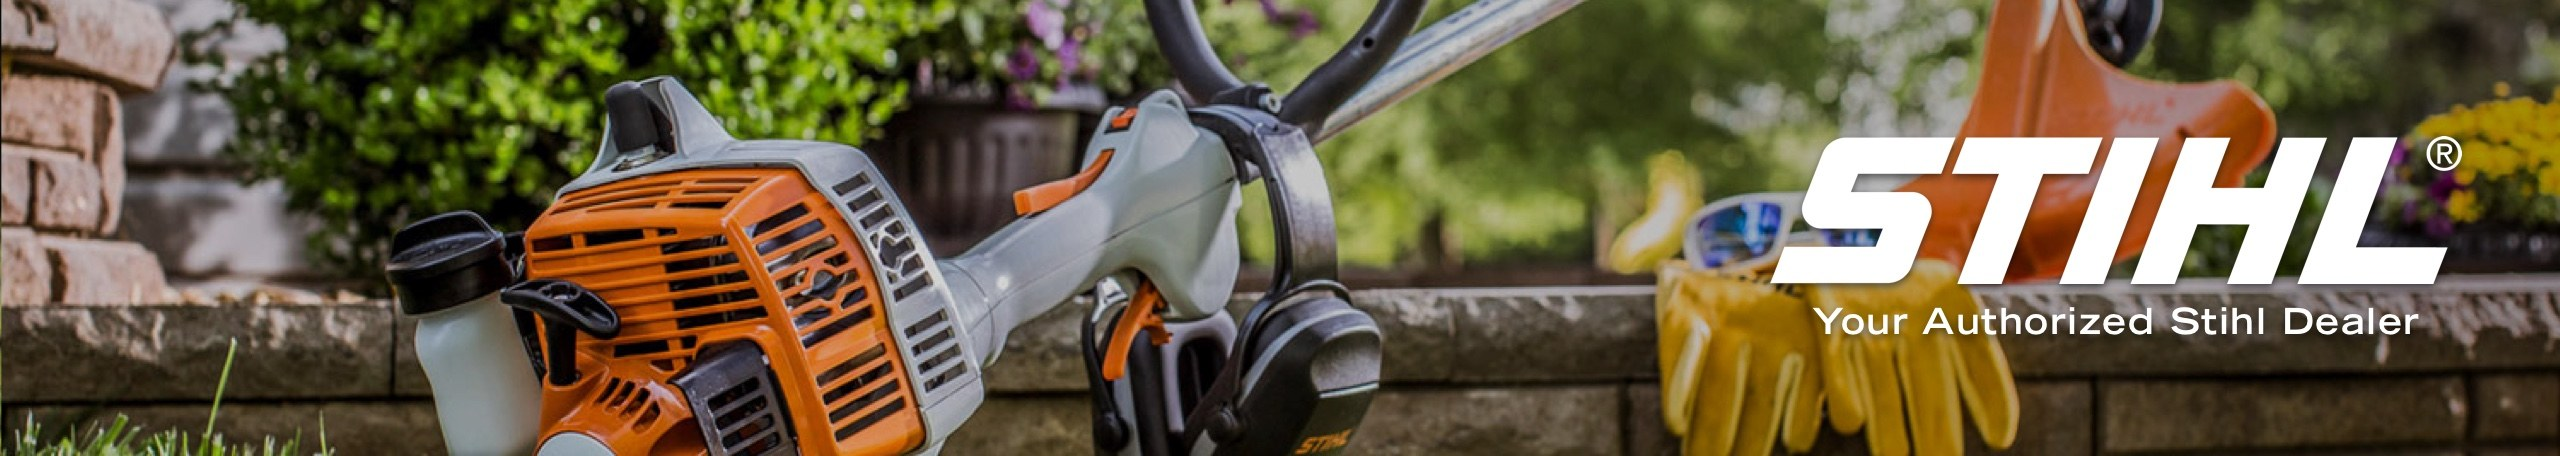 Stihl logo with leaf blower with Your Authorized Stihl Dealer